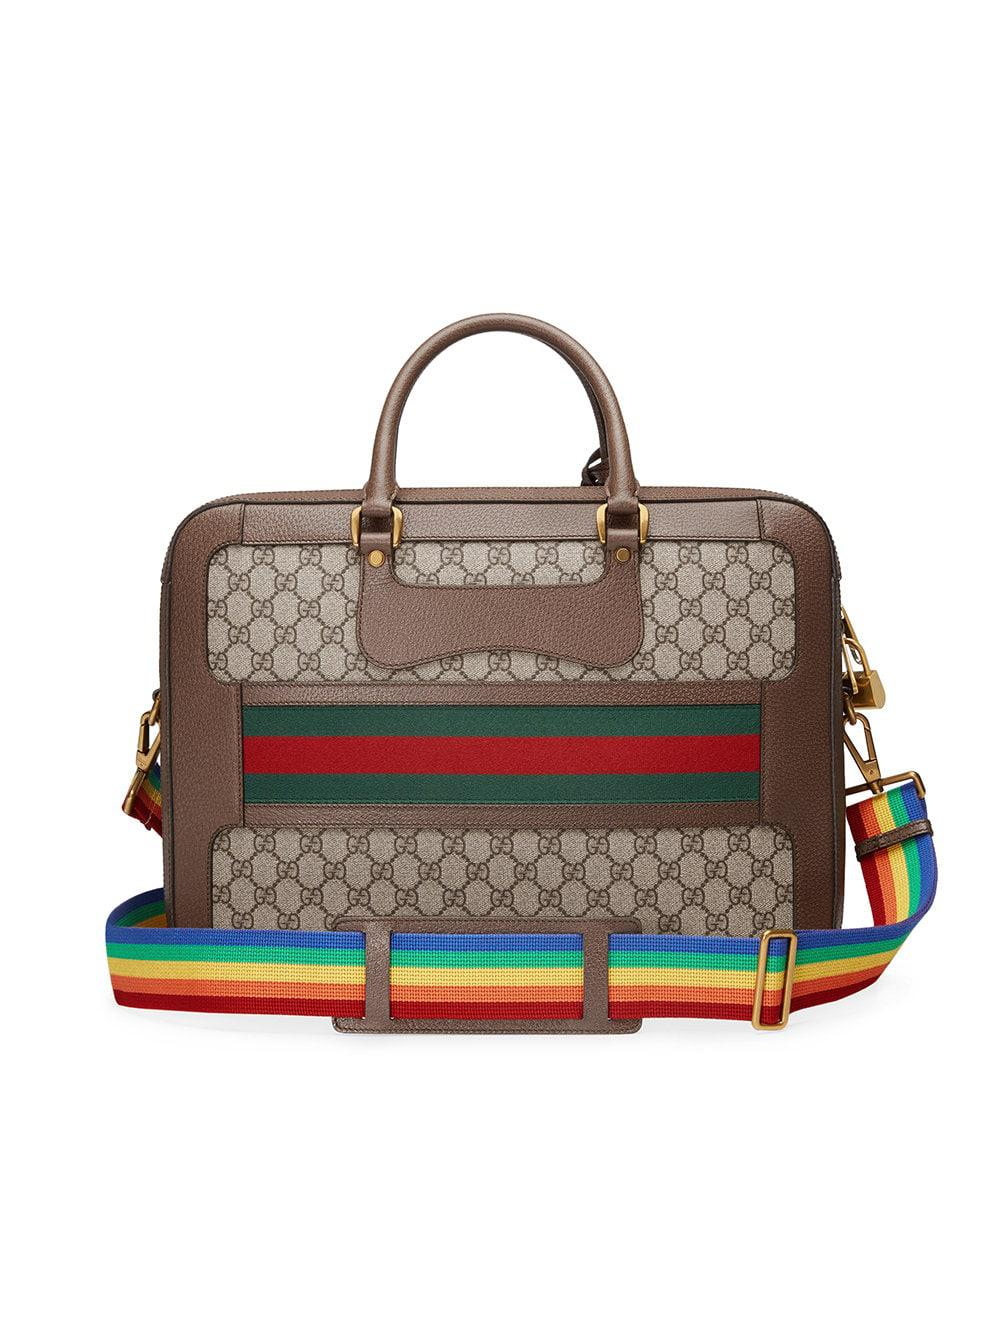 24bc40681149 Gucci GG Supreme Briefcase With Web in Brown - Lyst